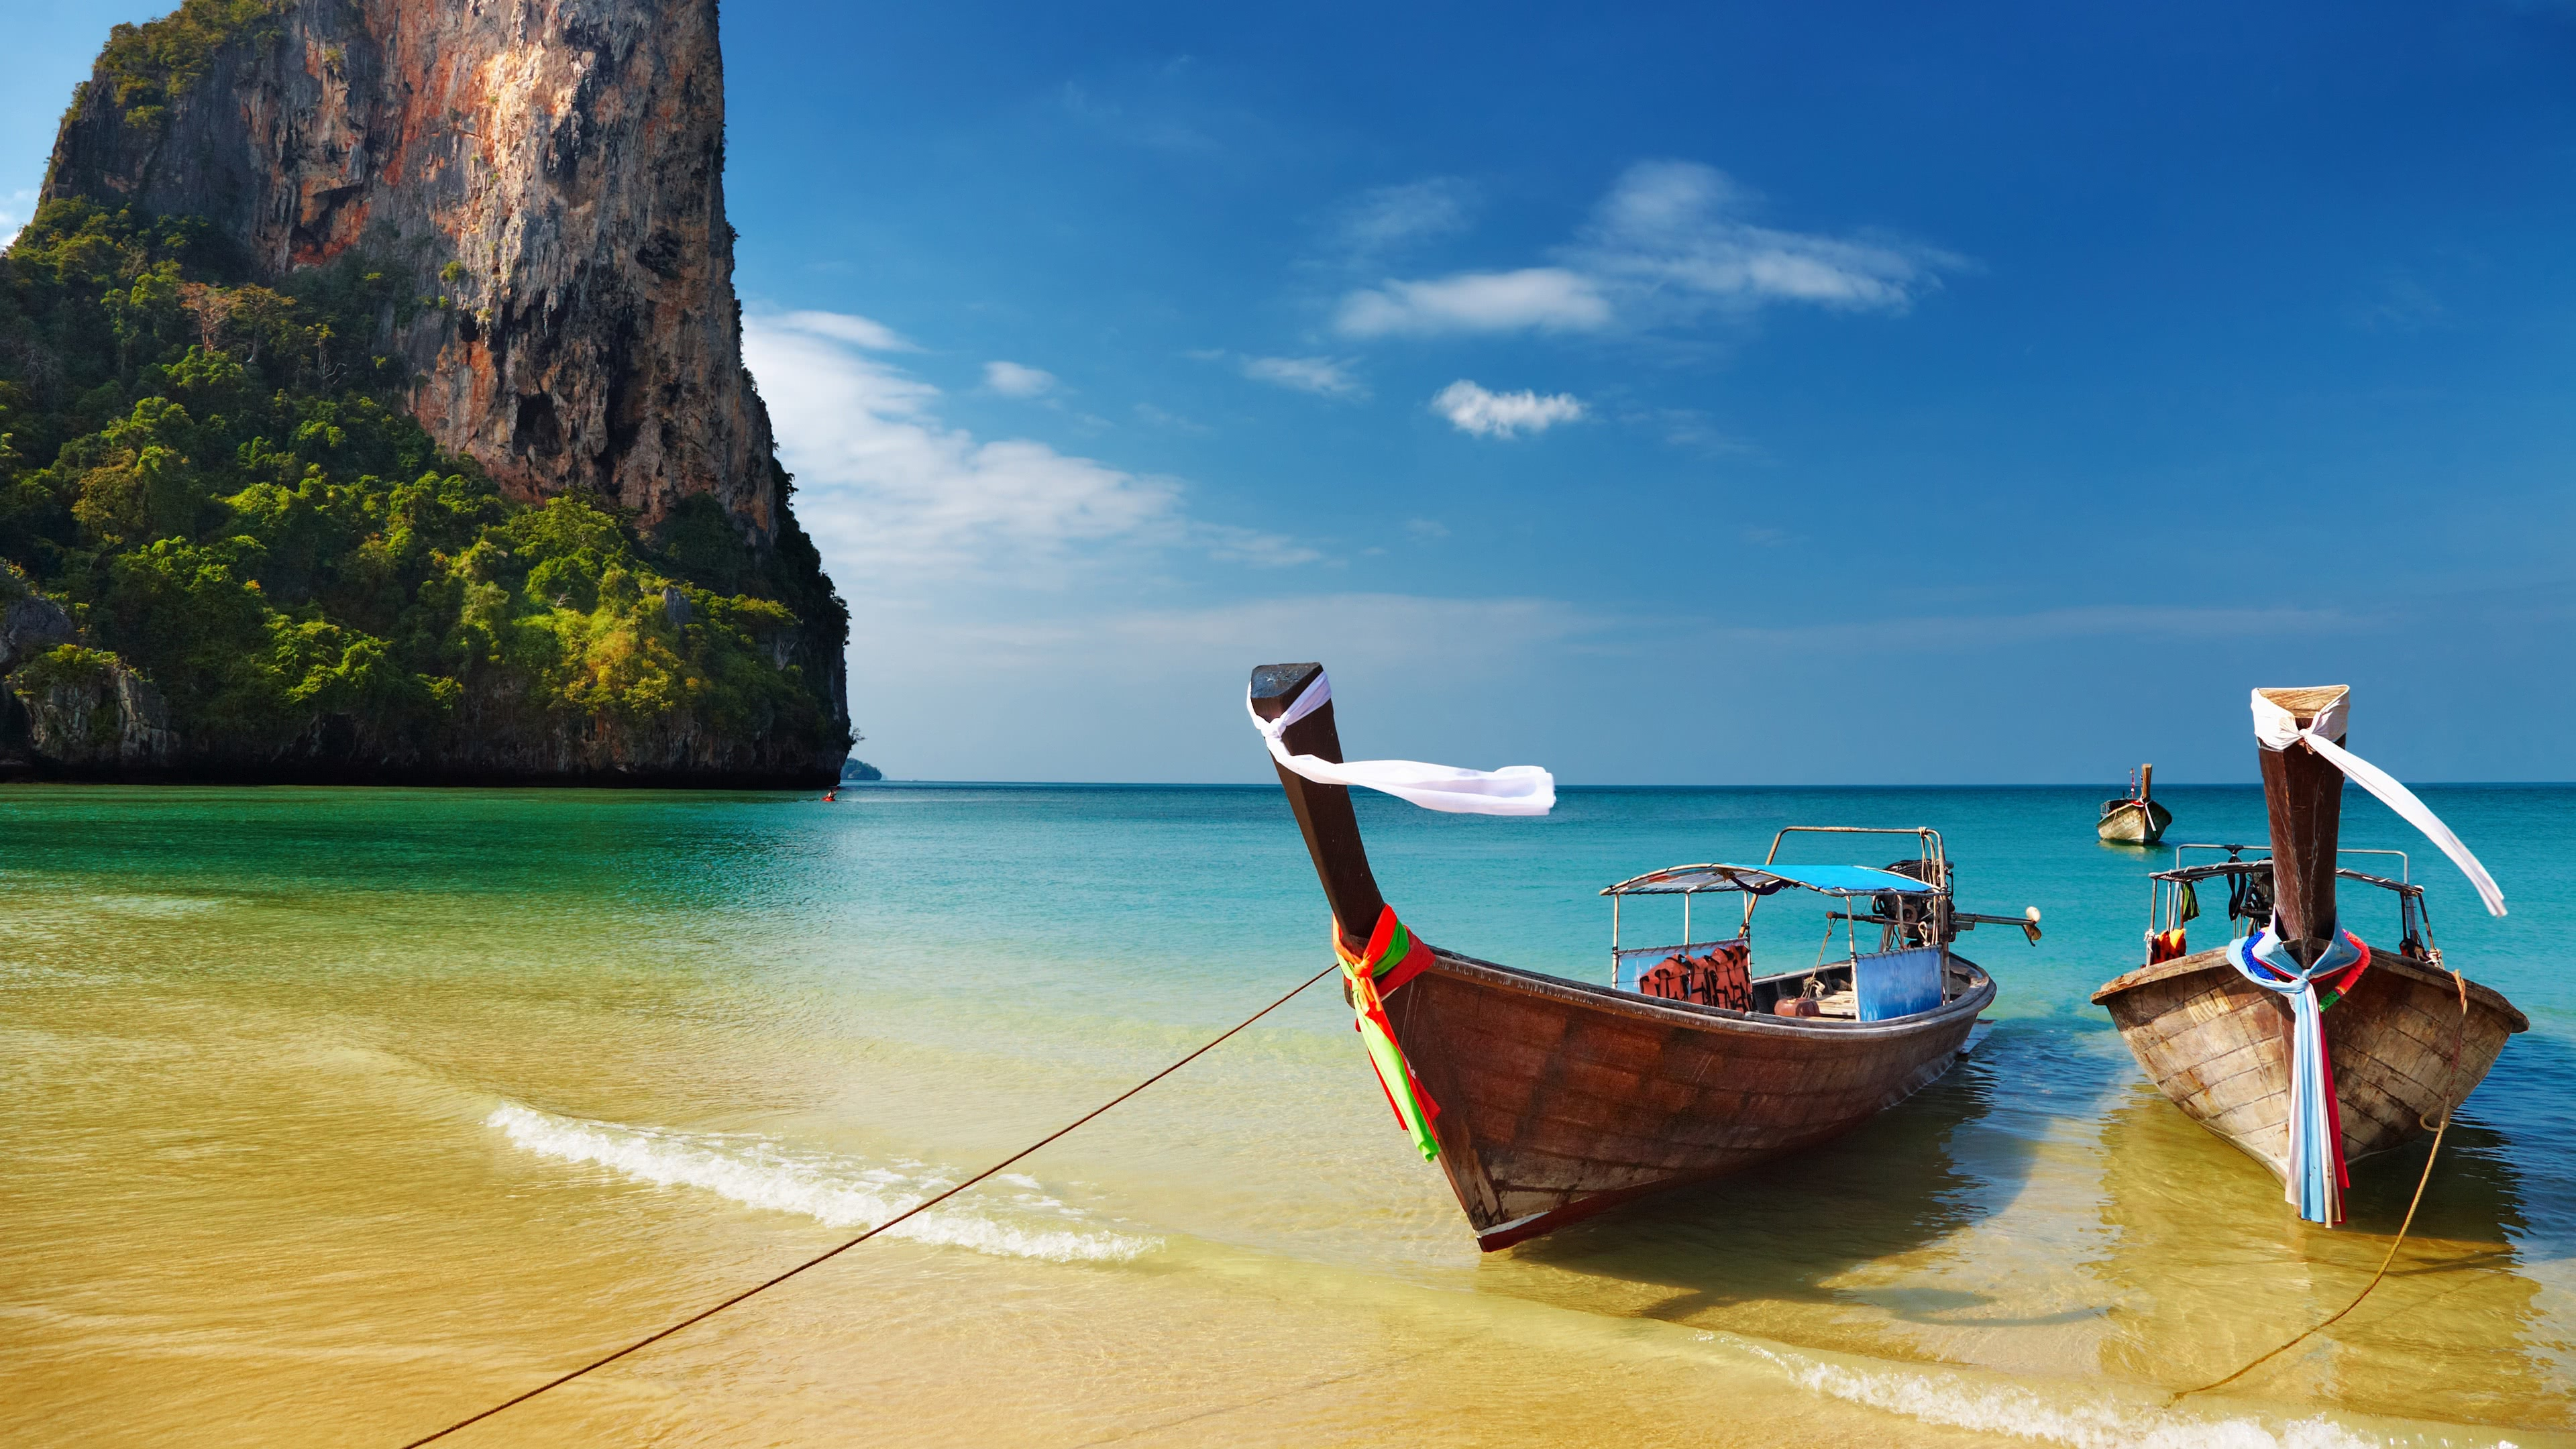 railay beach thailand 4k wallpaper